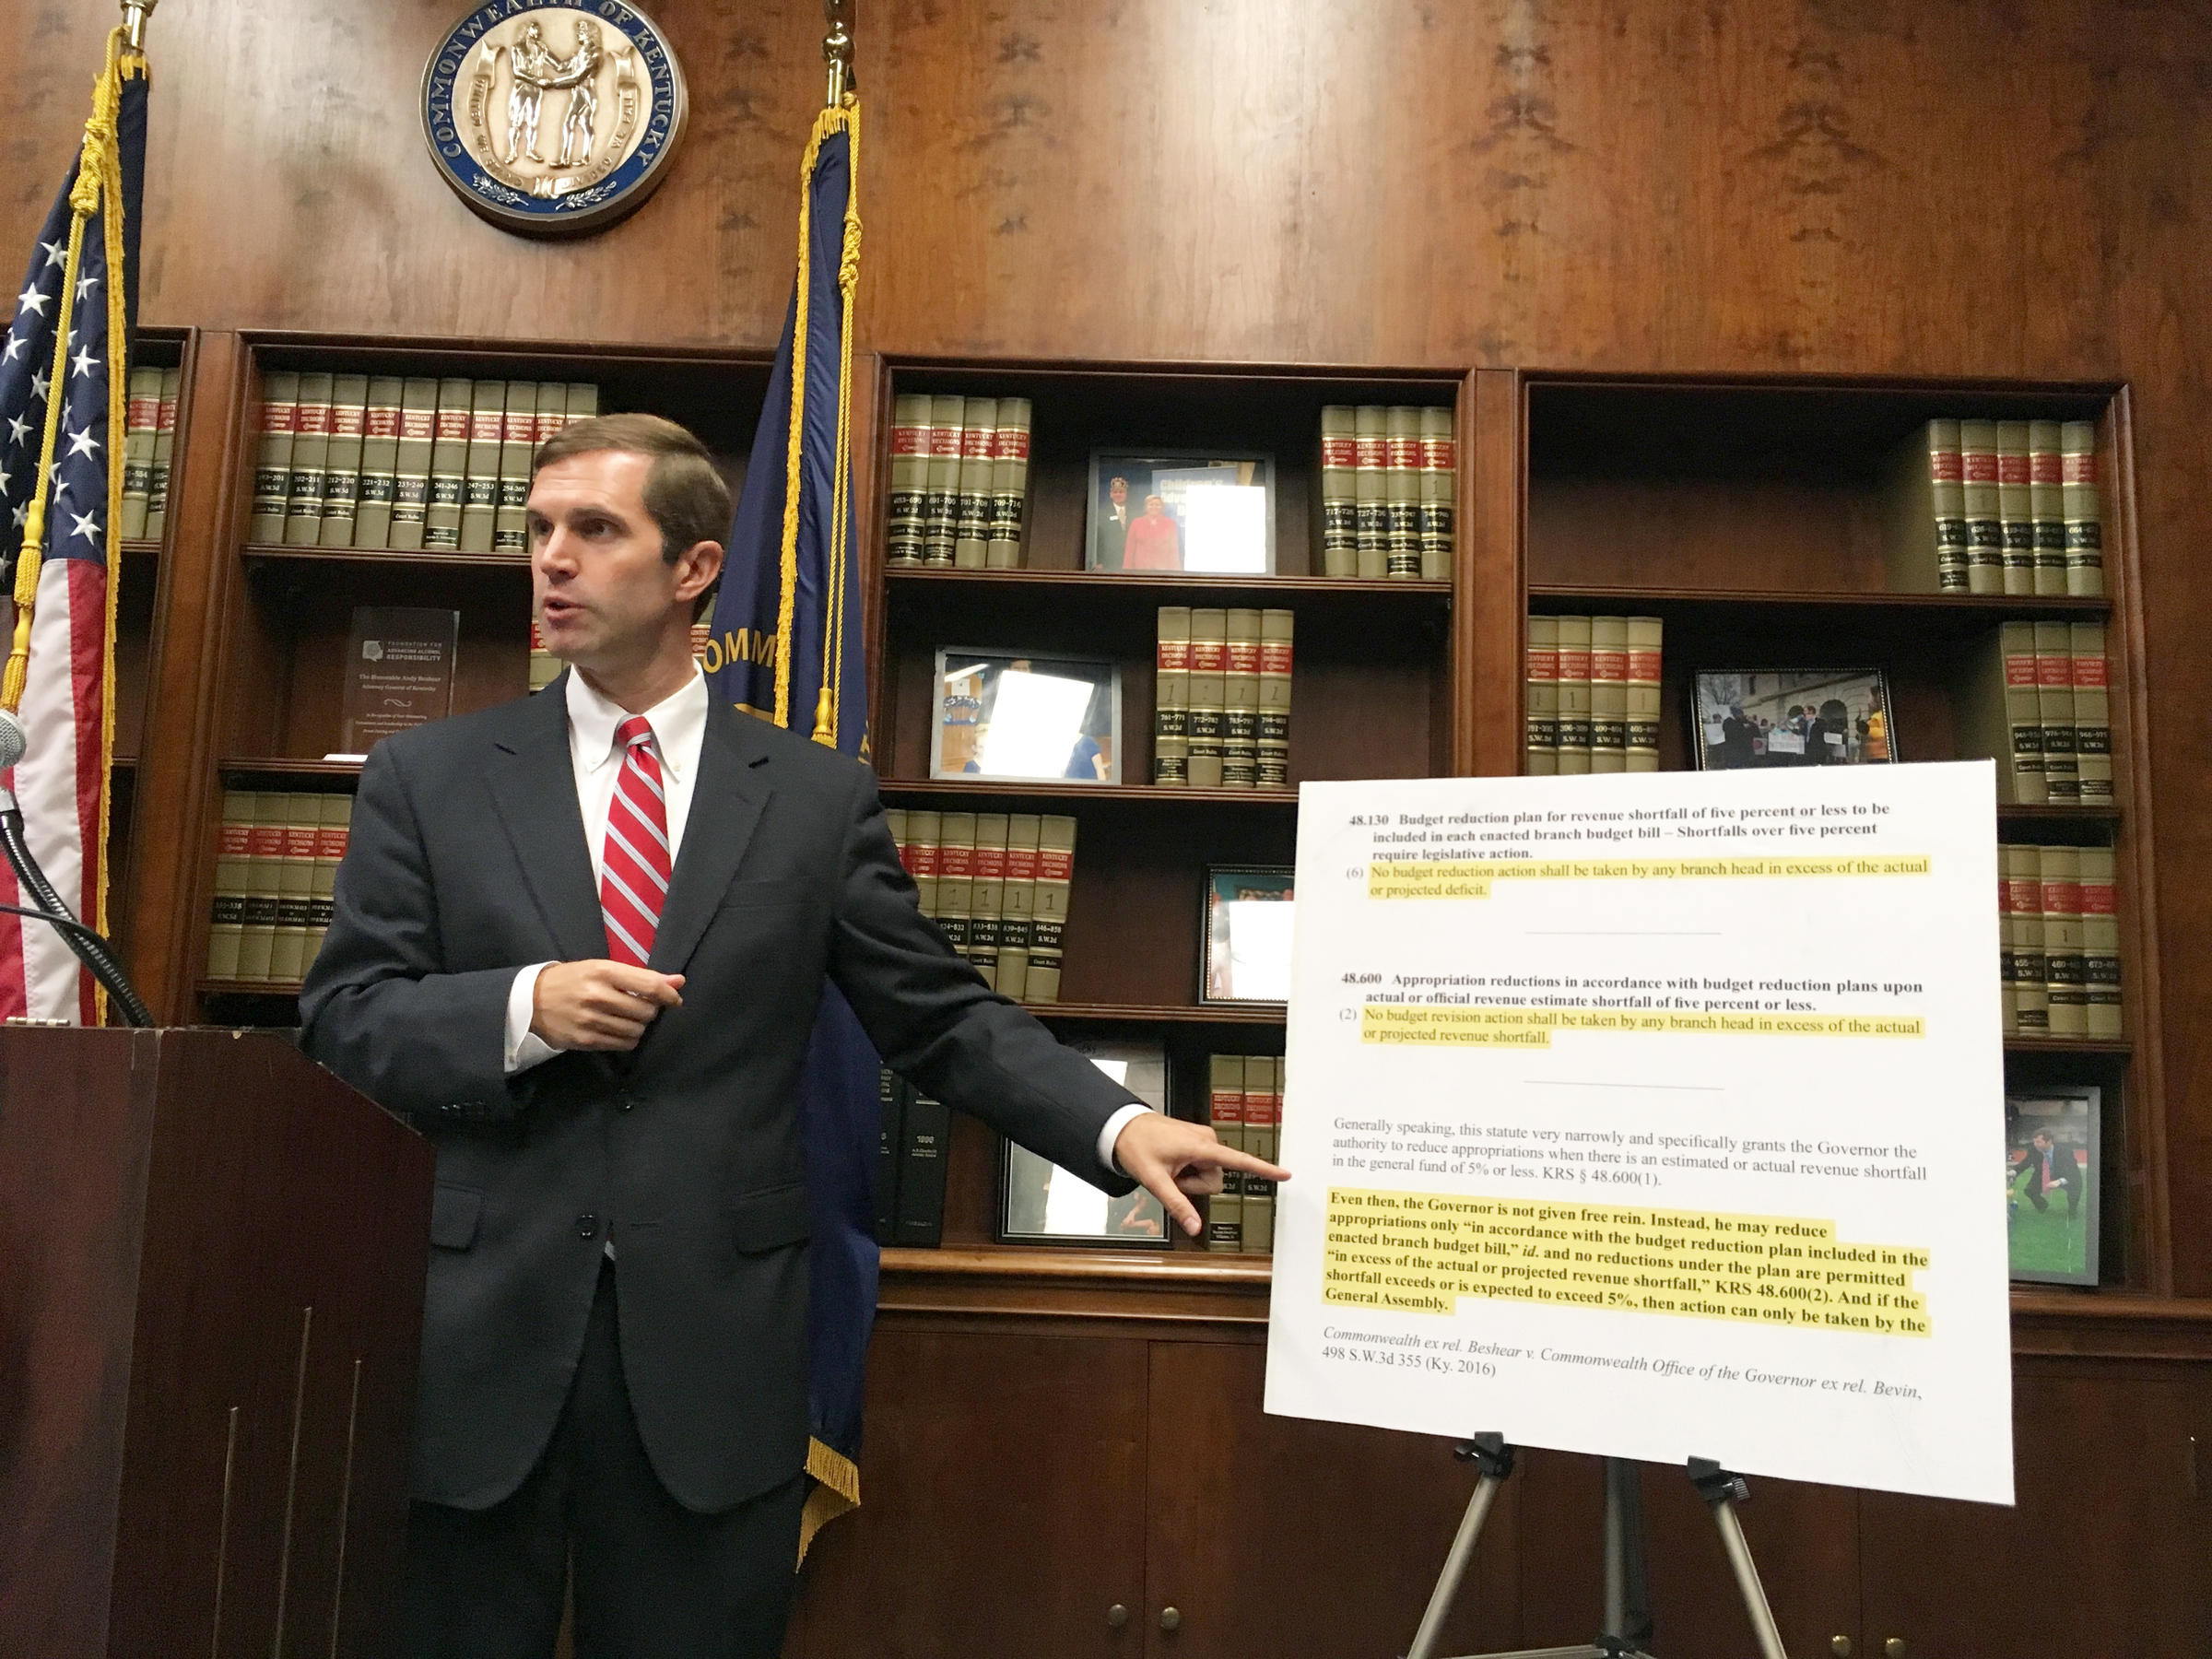 Attorney General Andy Beshear criticizes Governor Bevin's budget plan